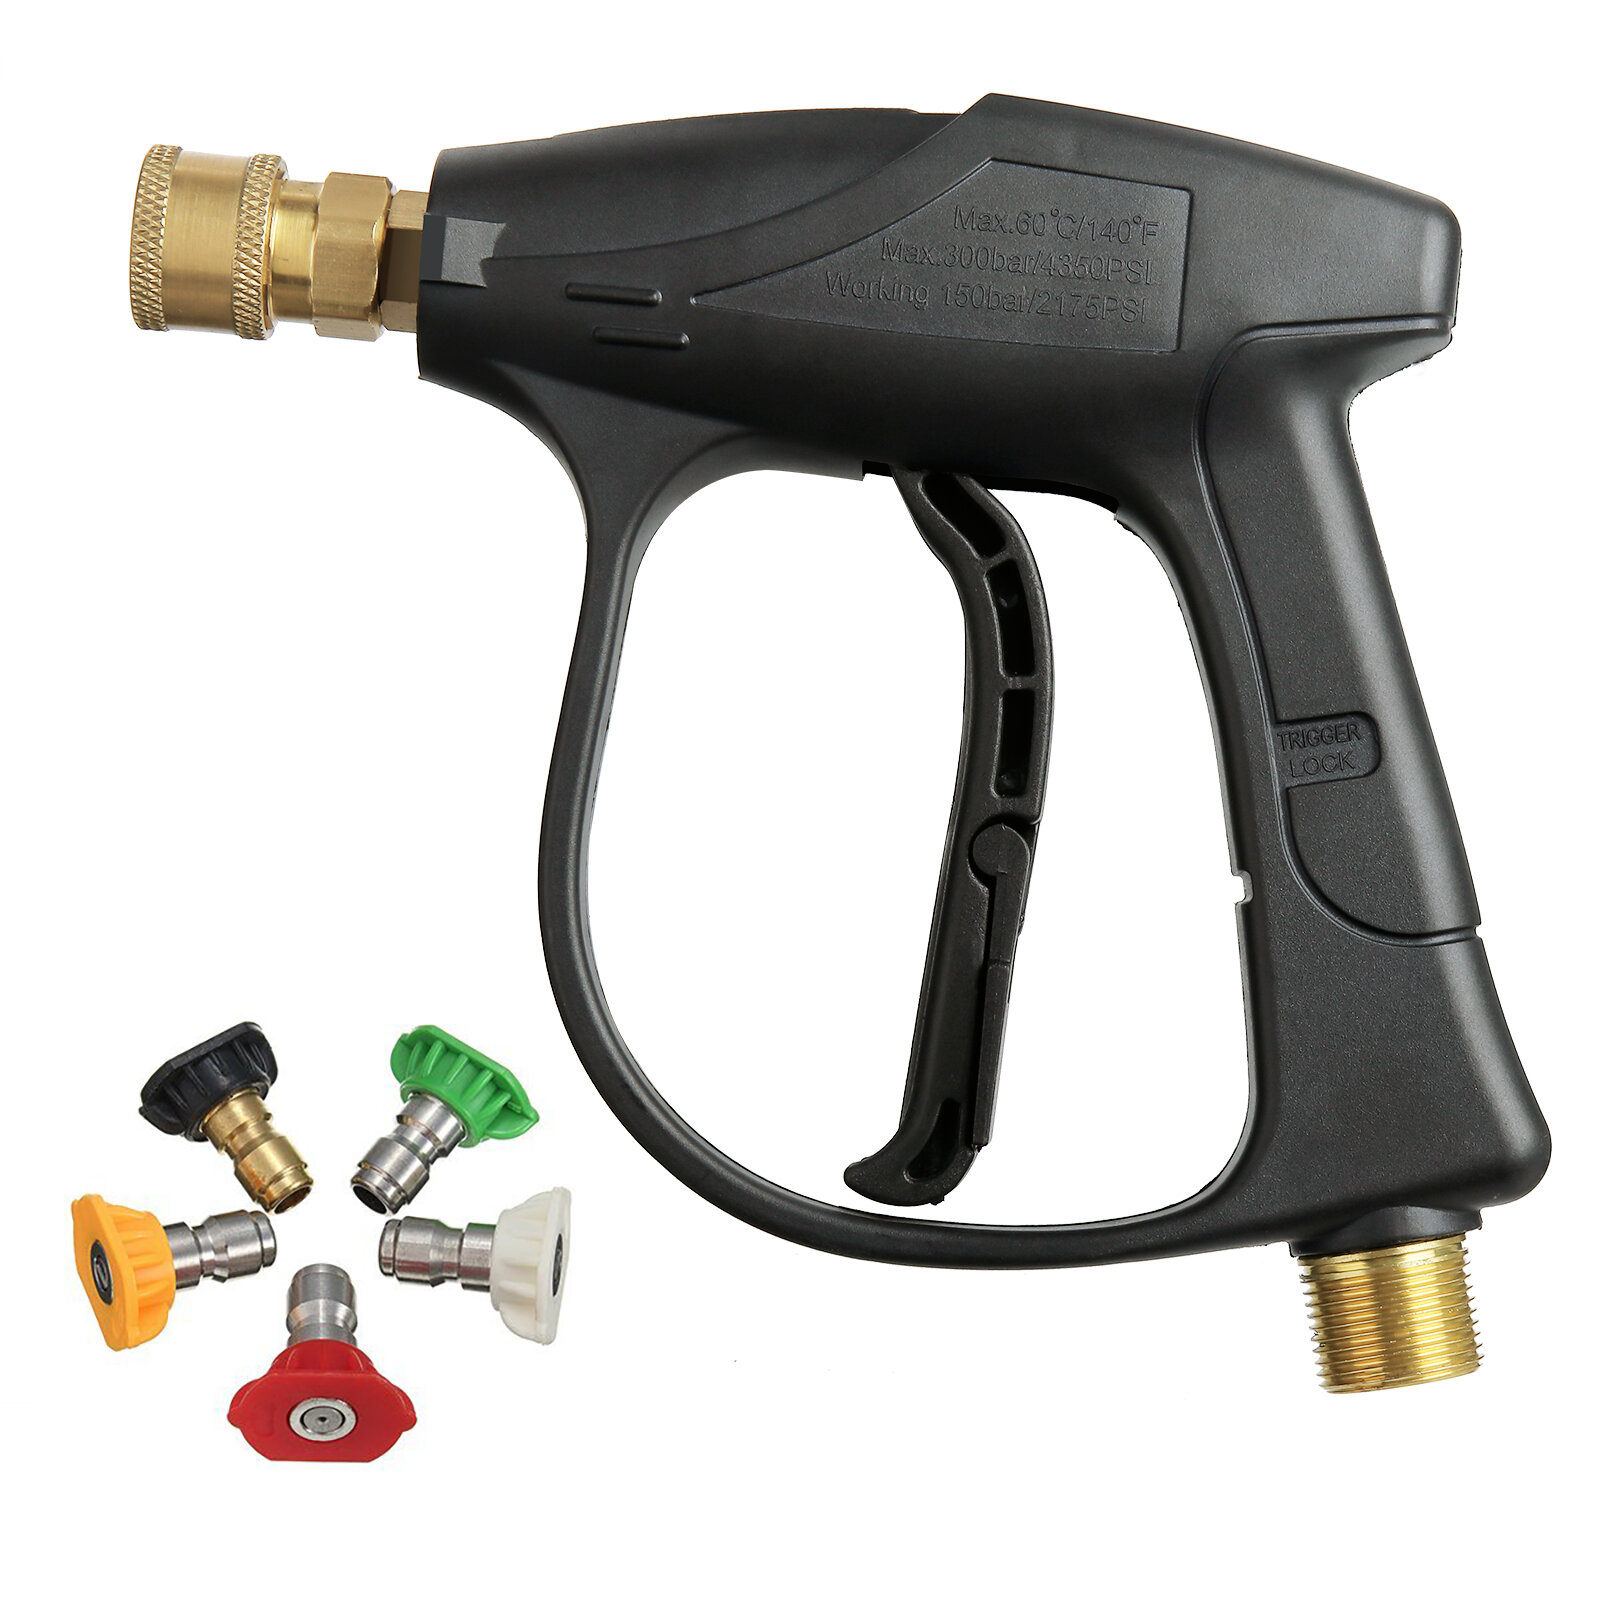 MATCC 200BAR/3000PSI High Pressure Washer With 5 Nozzles for Car Pressure Power Washers